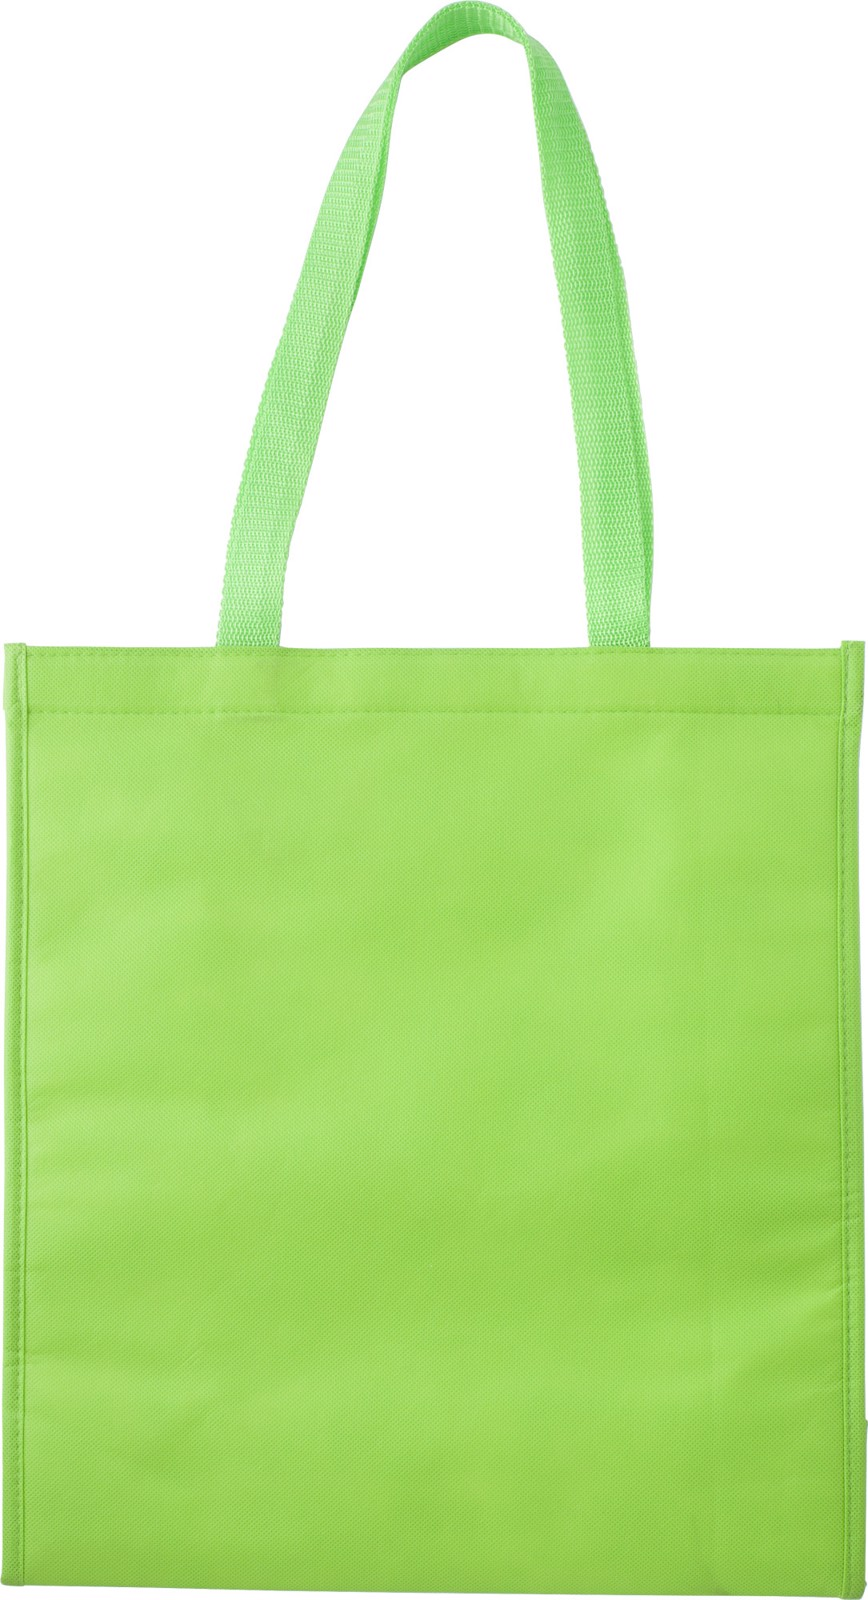 Nonwoven (80gr/m²) cooling bag - Lime